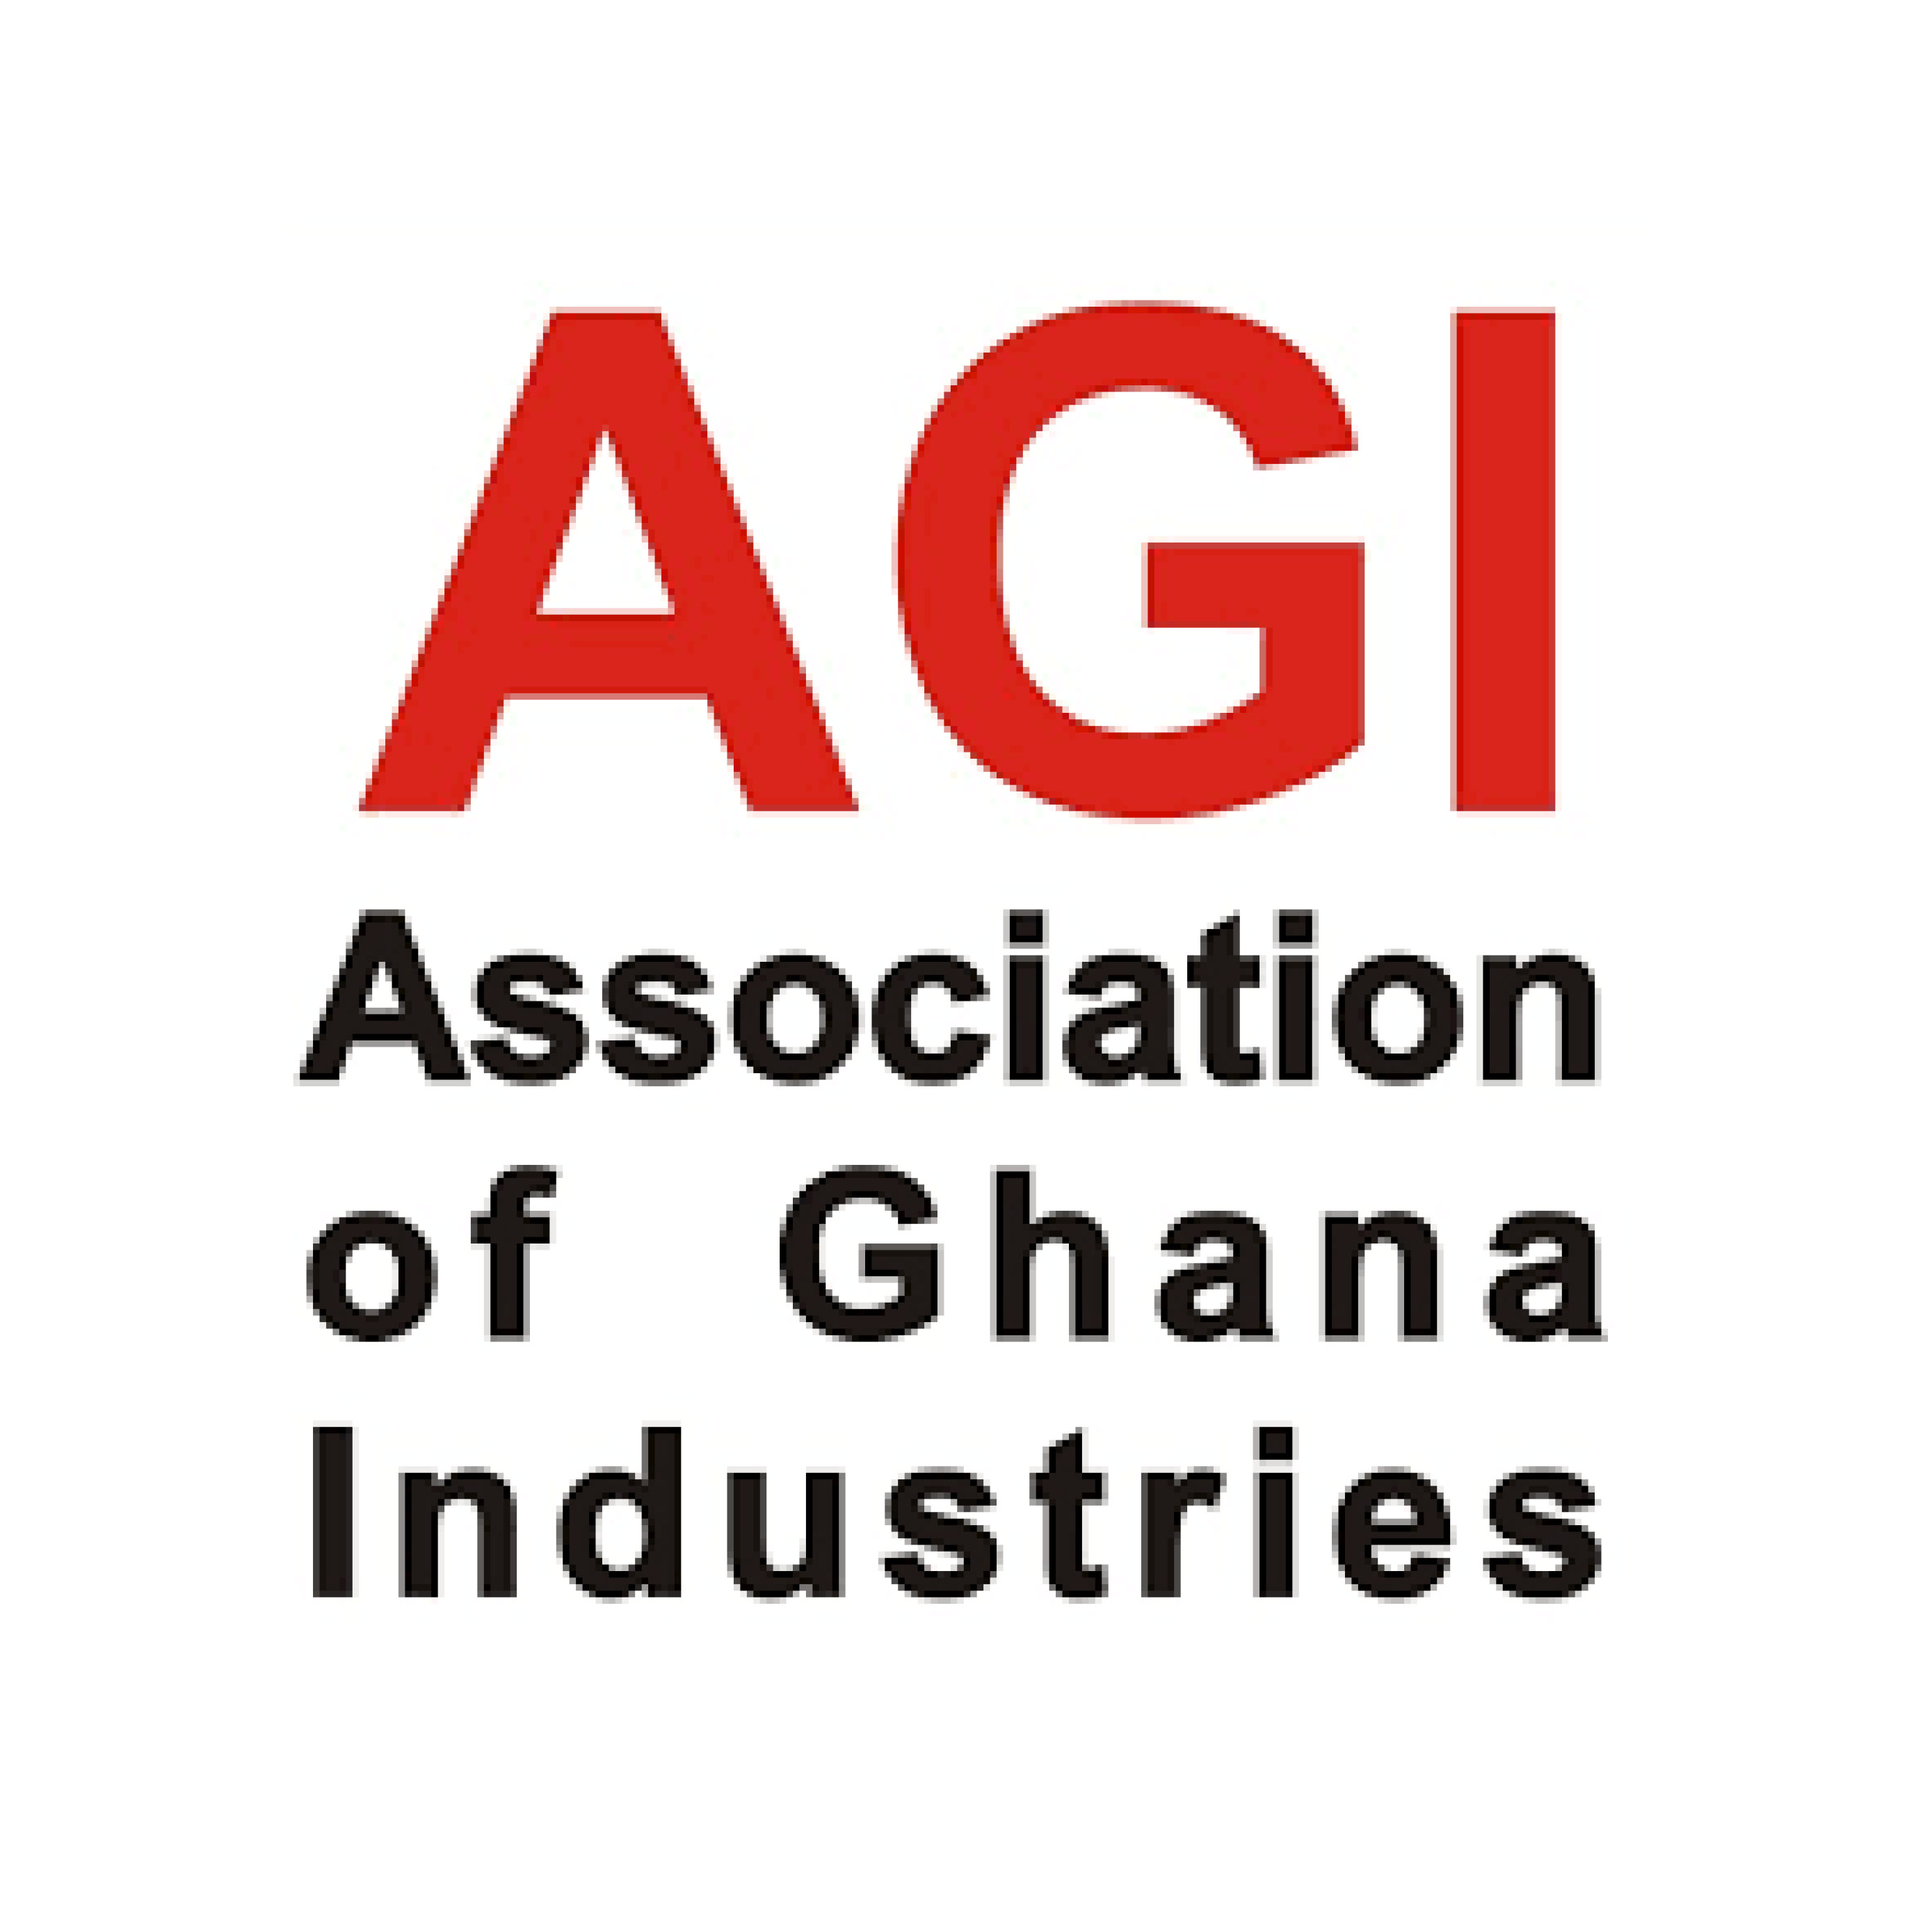 Association of Ghana Industries